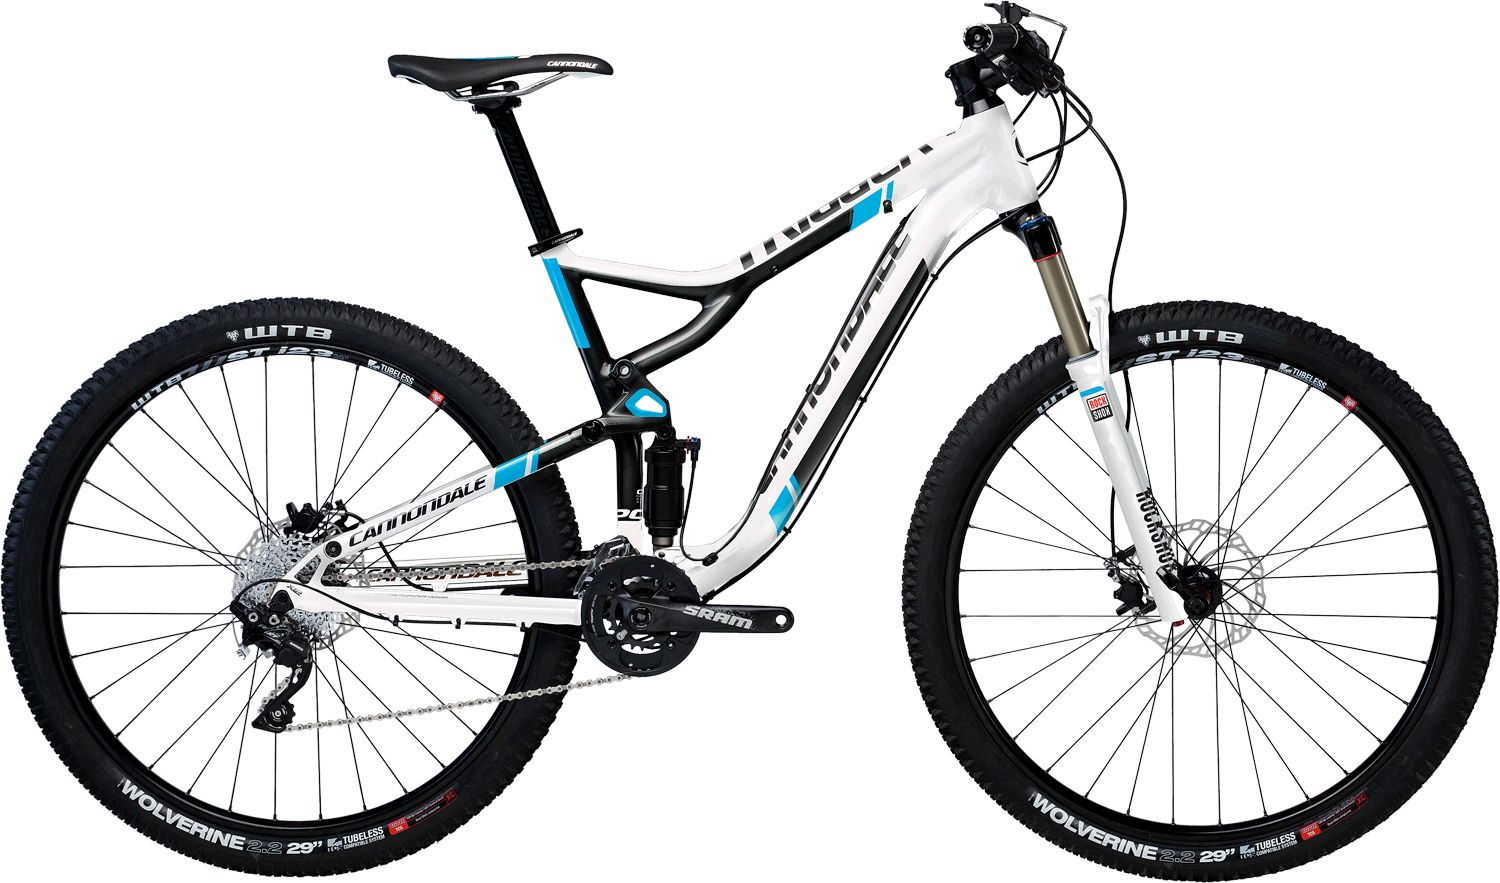 Cannondale Trigger 29er 3 2013 Review The Bike List